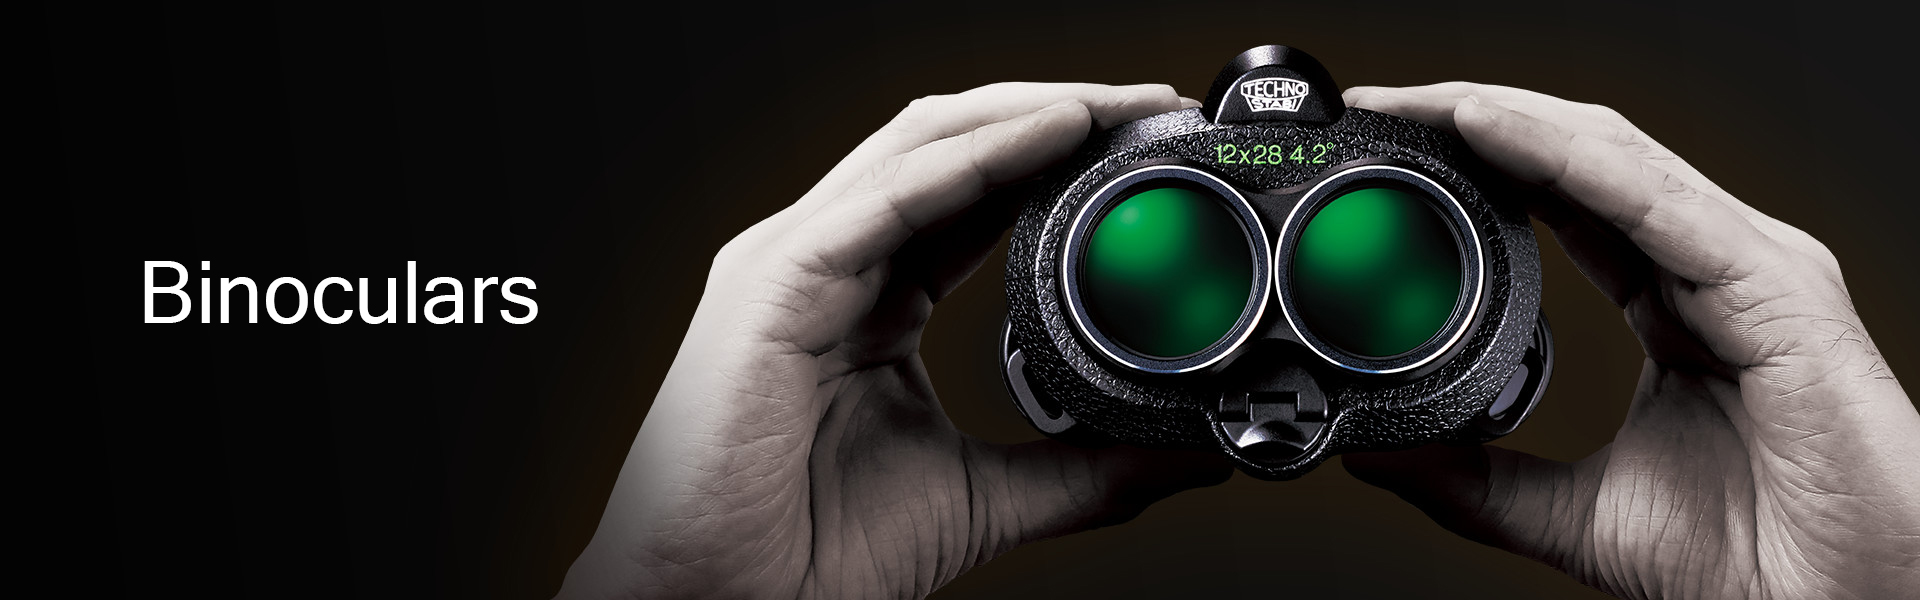 [photo] Two hands holding Techno-Stabi Series binoculars that have green lenses